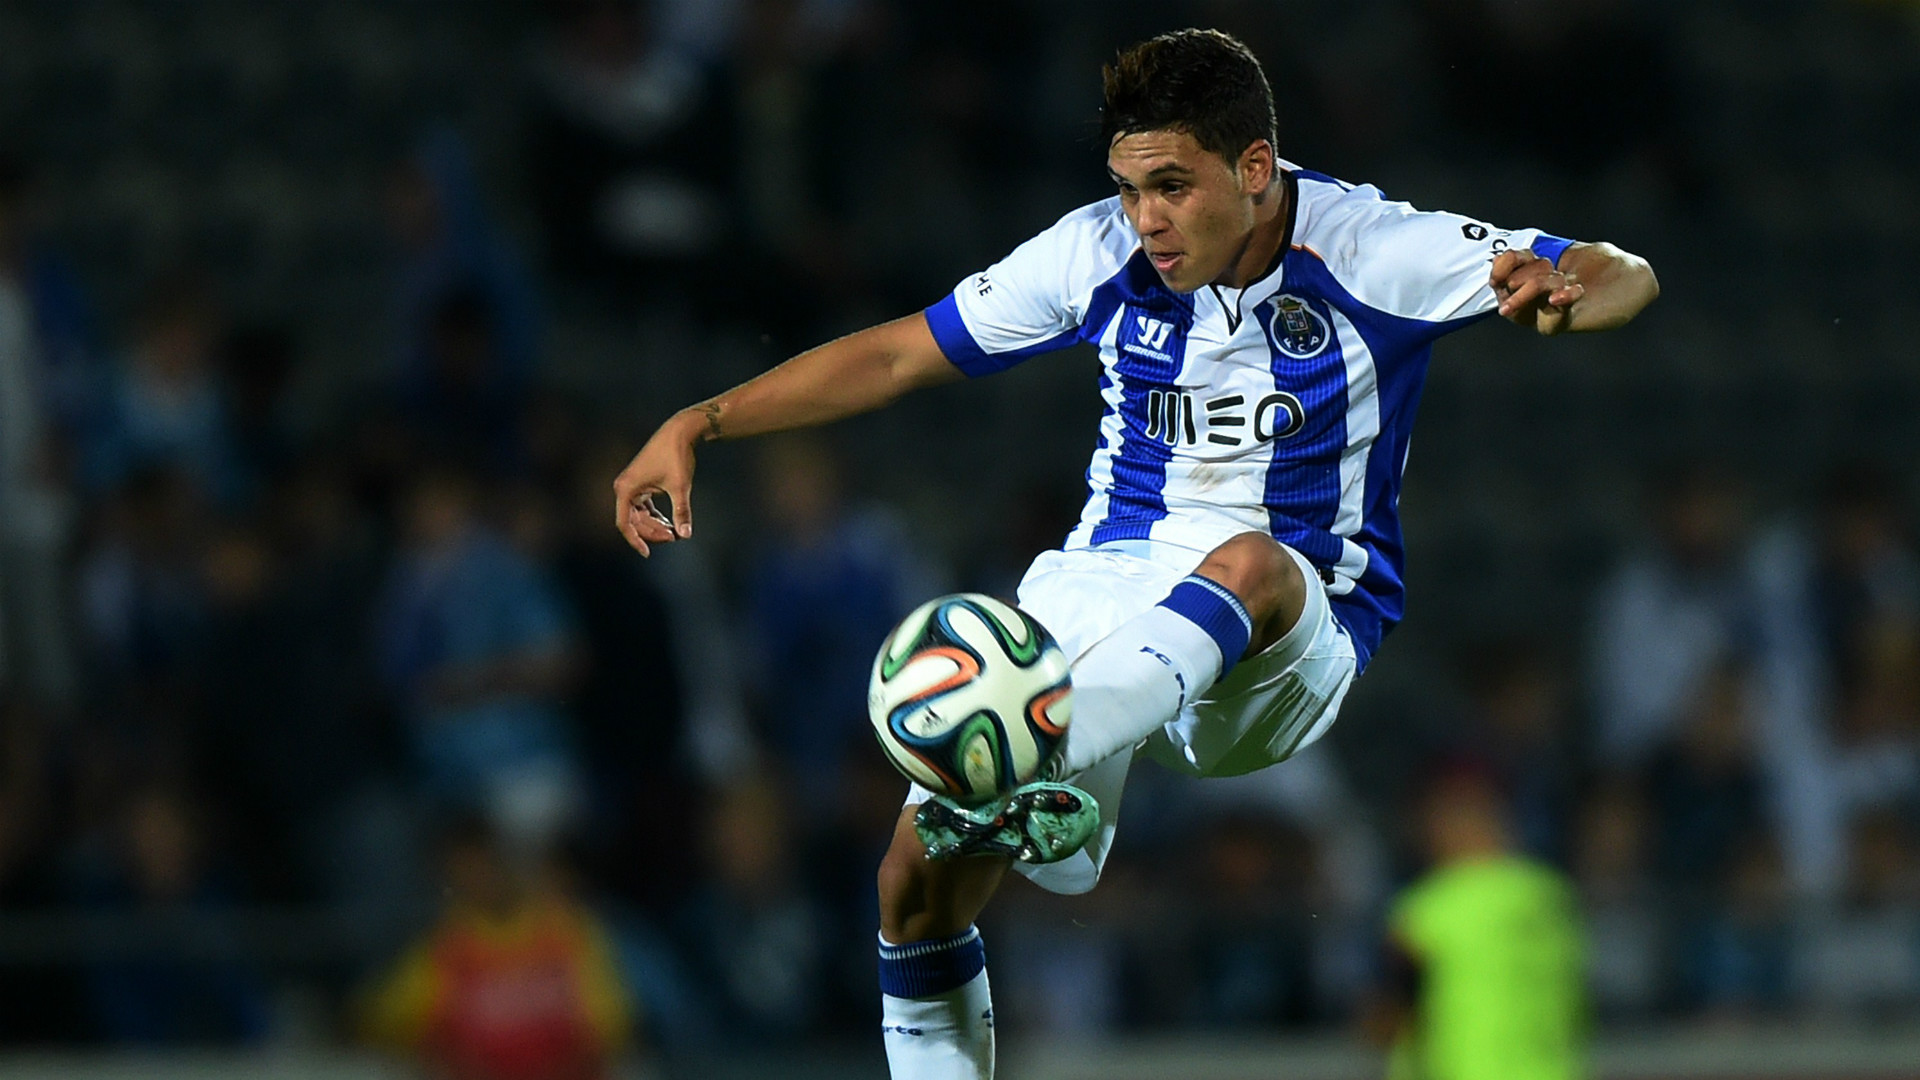 Juan Fernando Quintero: MLS Transfer News: The Latest Rumors And Trades In Major